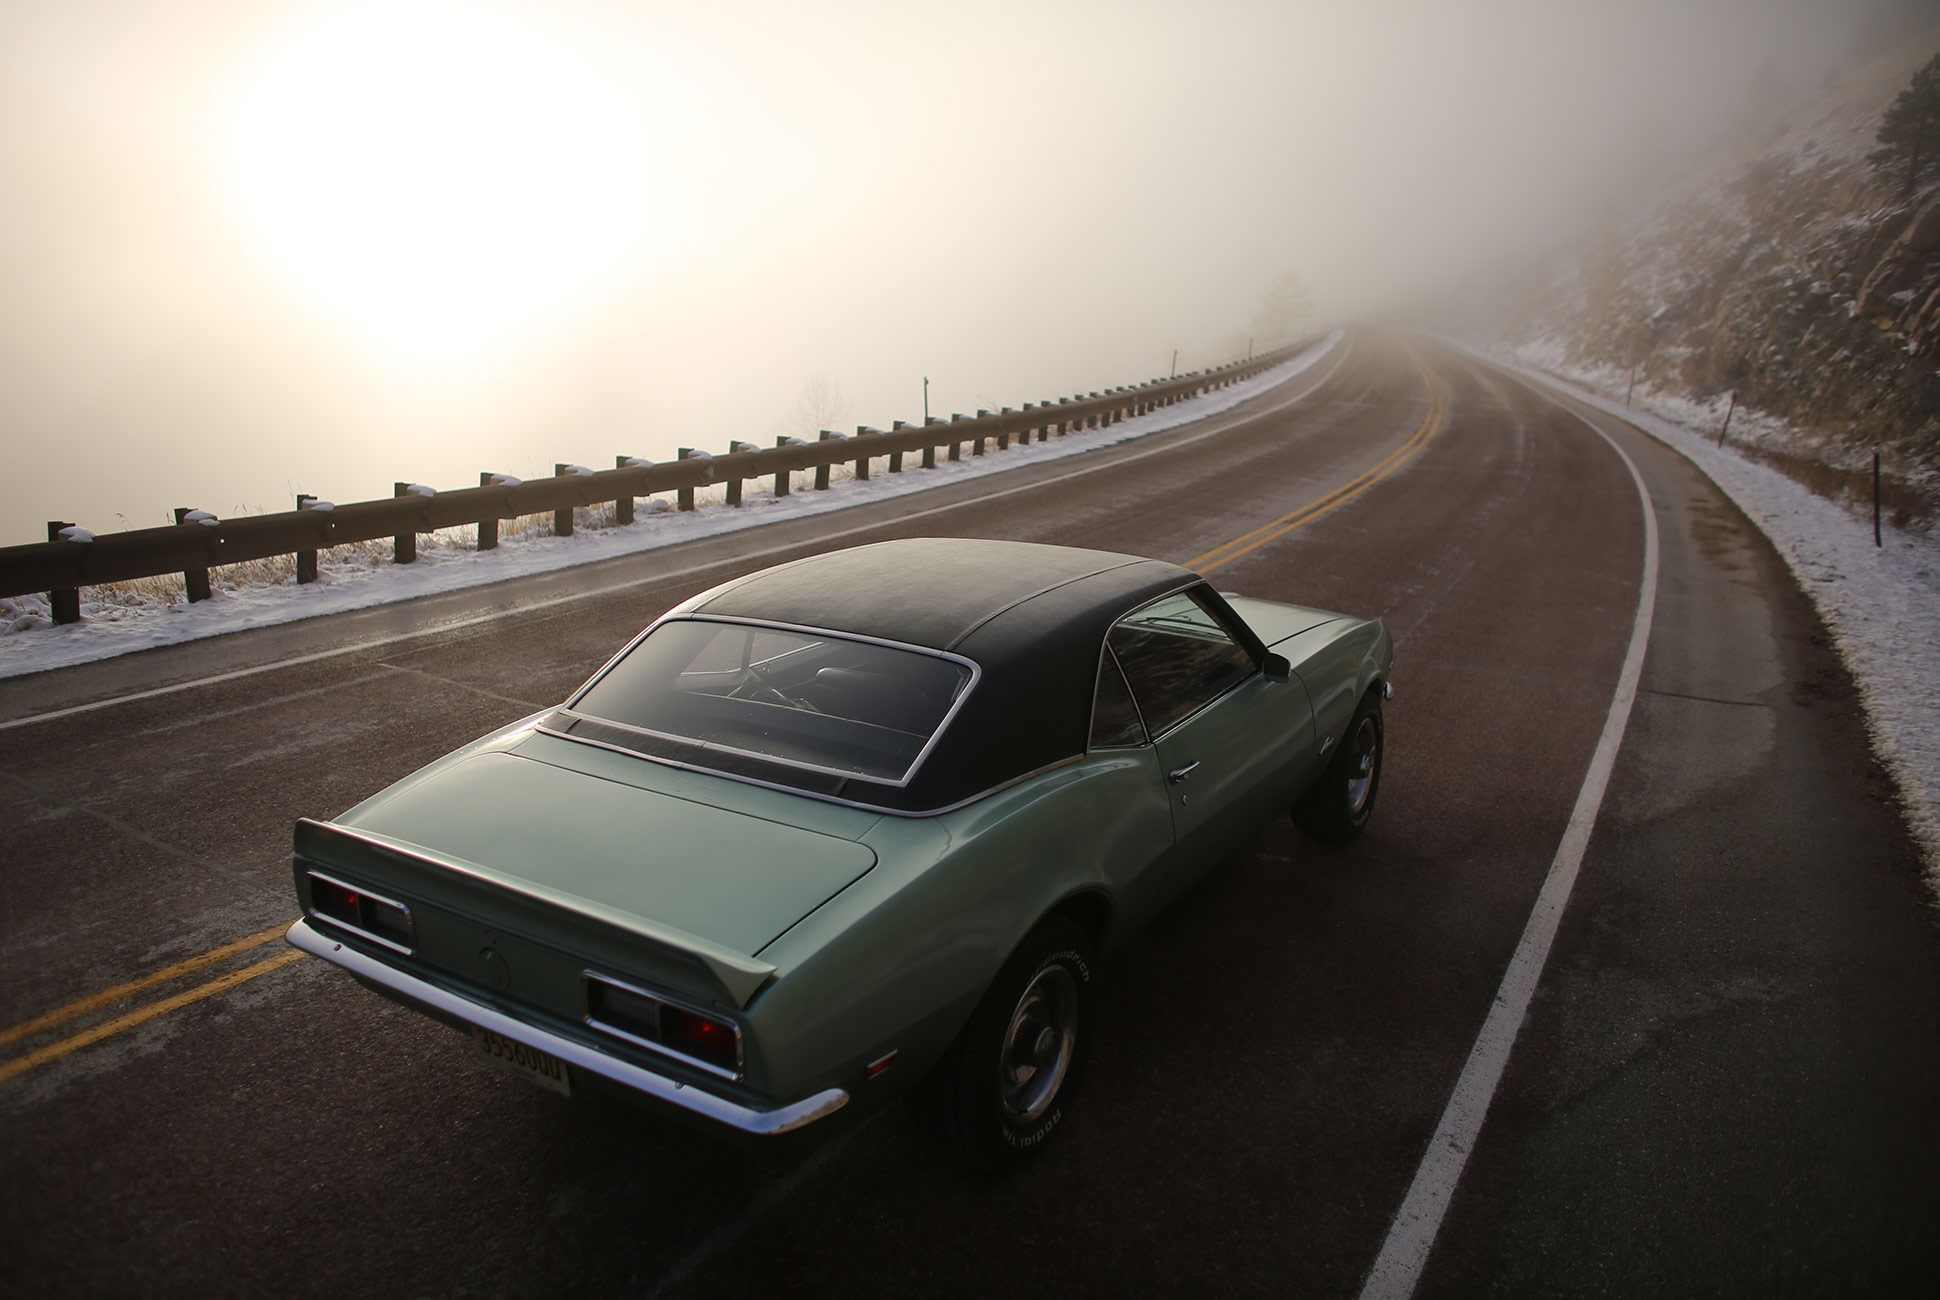 Chevy Camaro Lease >> The Ultimate Road Trip and a 1967 Chevy Camaro • Gear Patrol